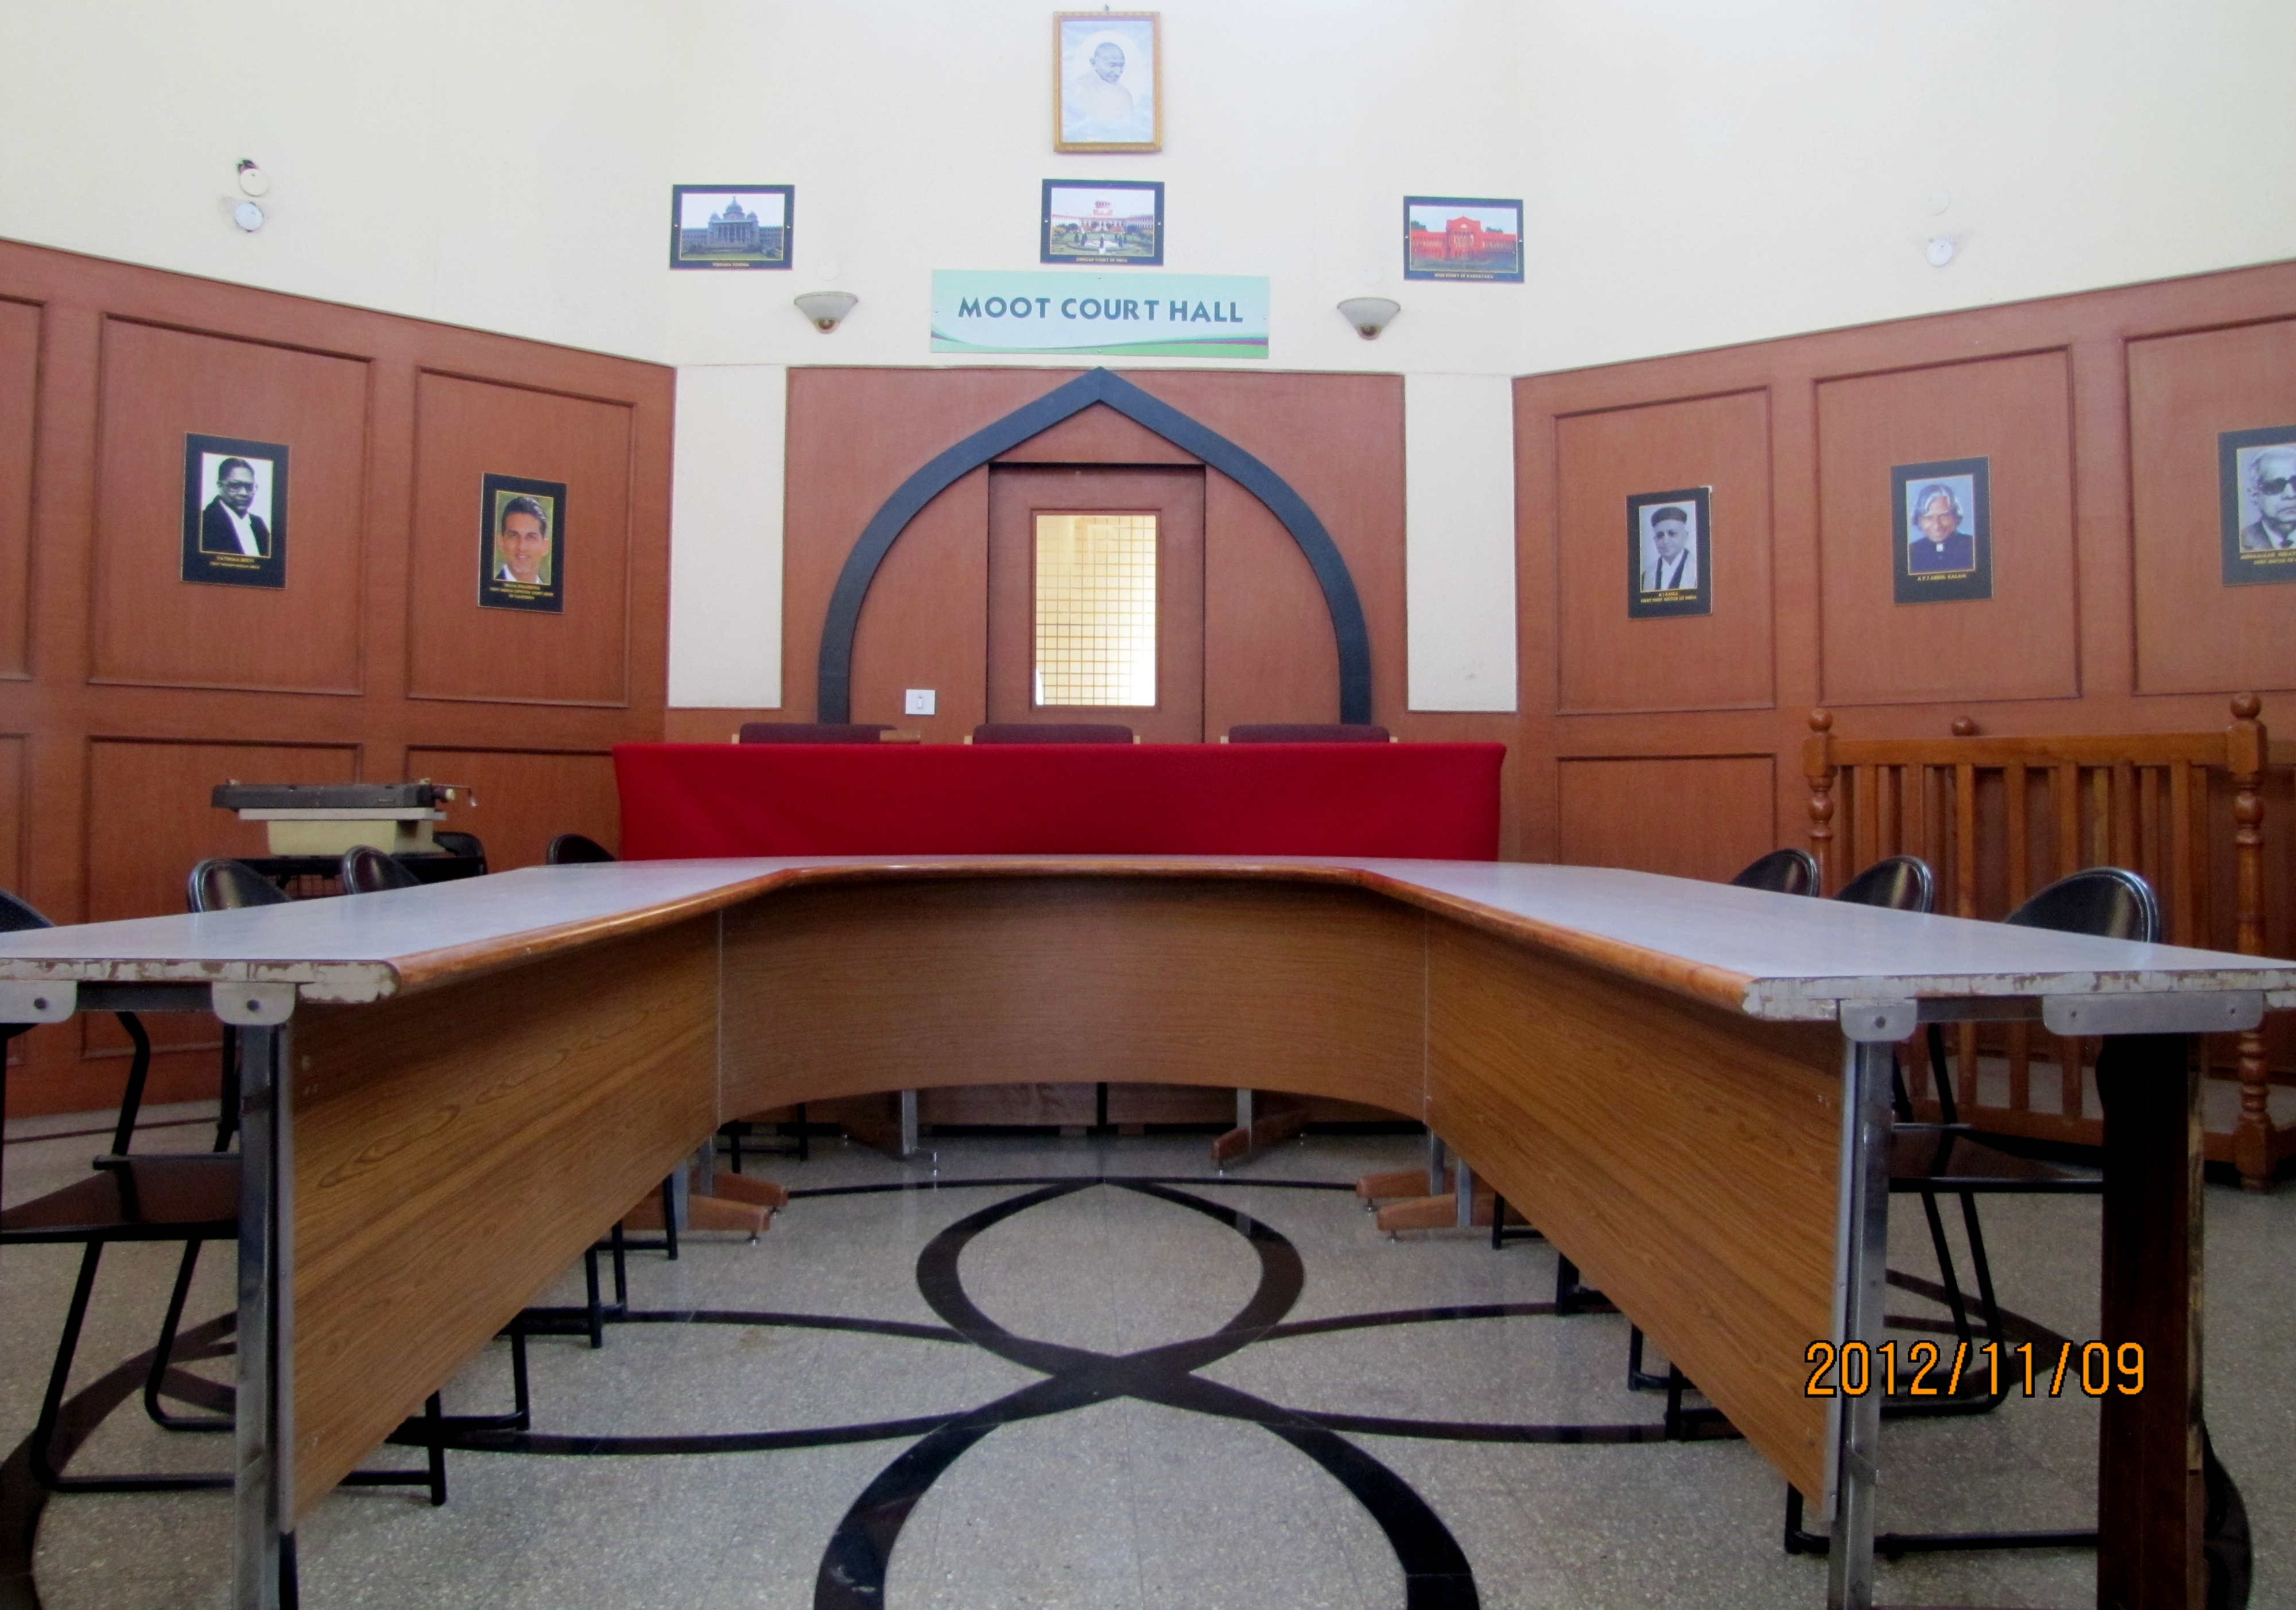 Moot Court Hall, Al-Ameen College of Law